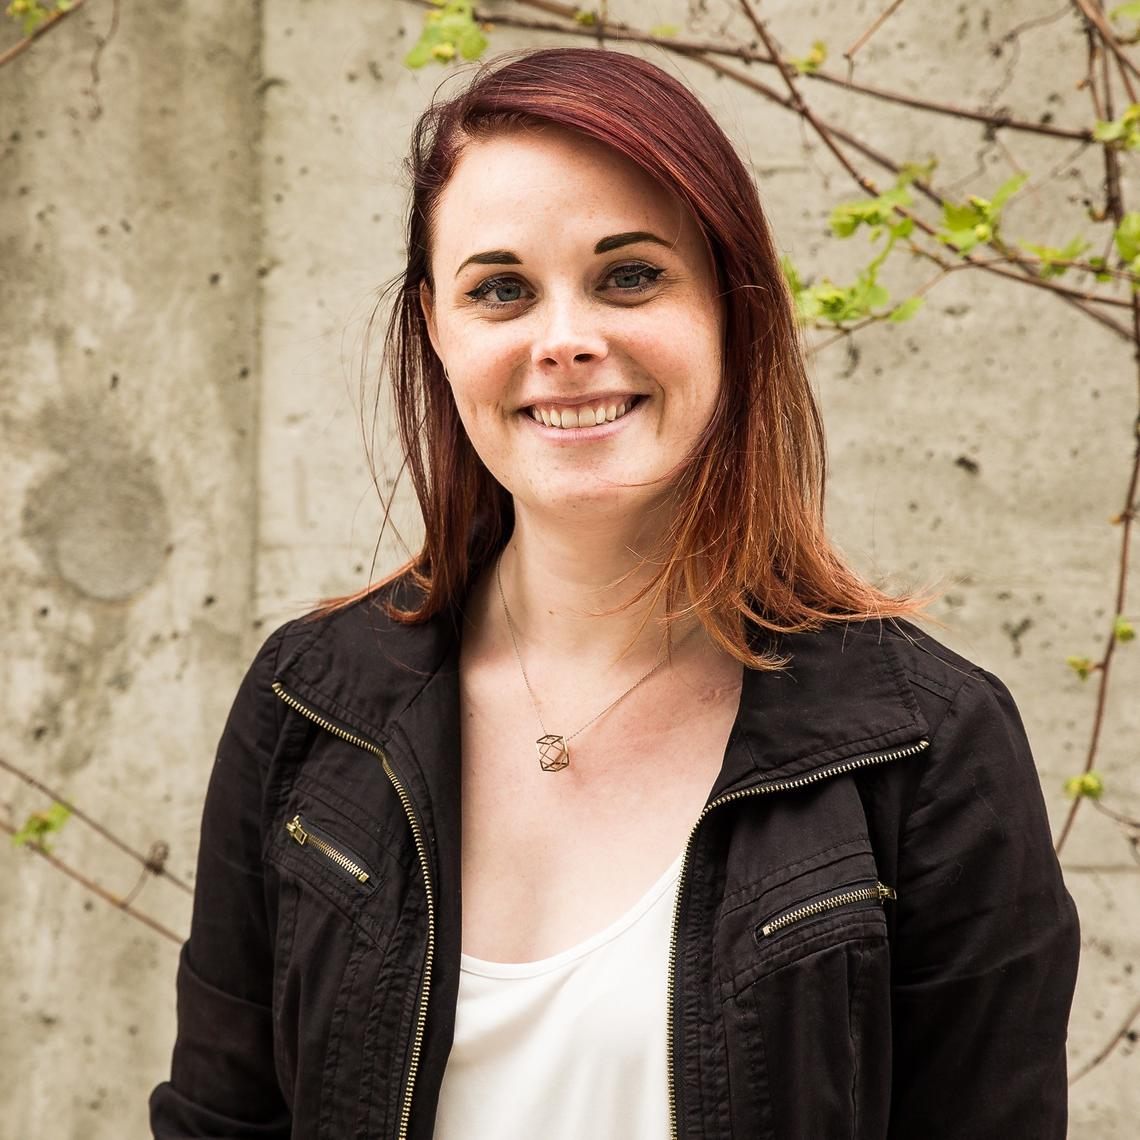 Kristine Vodon graduated with her Master's of Environmental Design from the University of Calgary's School of Architecture, Planning and Landscape.